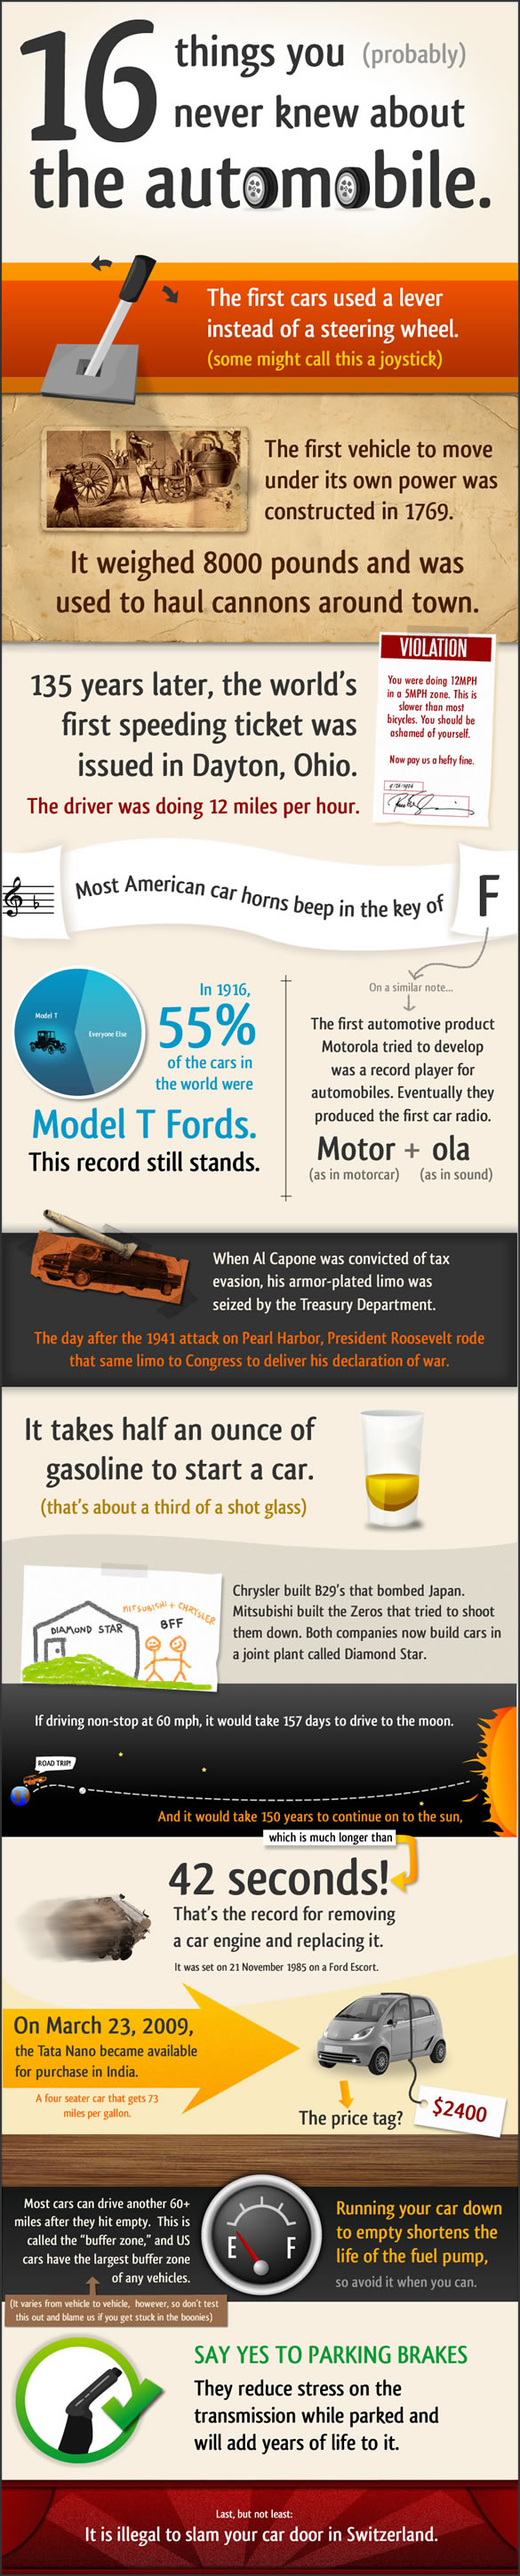 Interesting-Facts-About-Automobiles